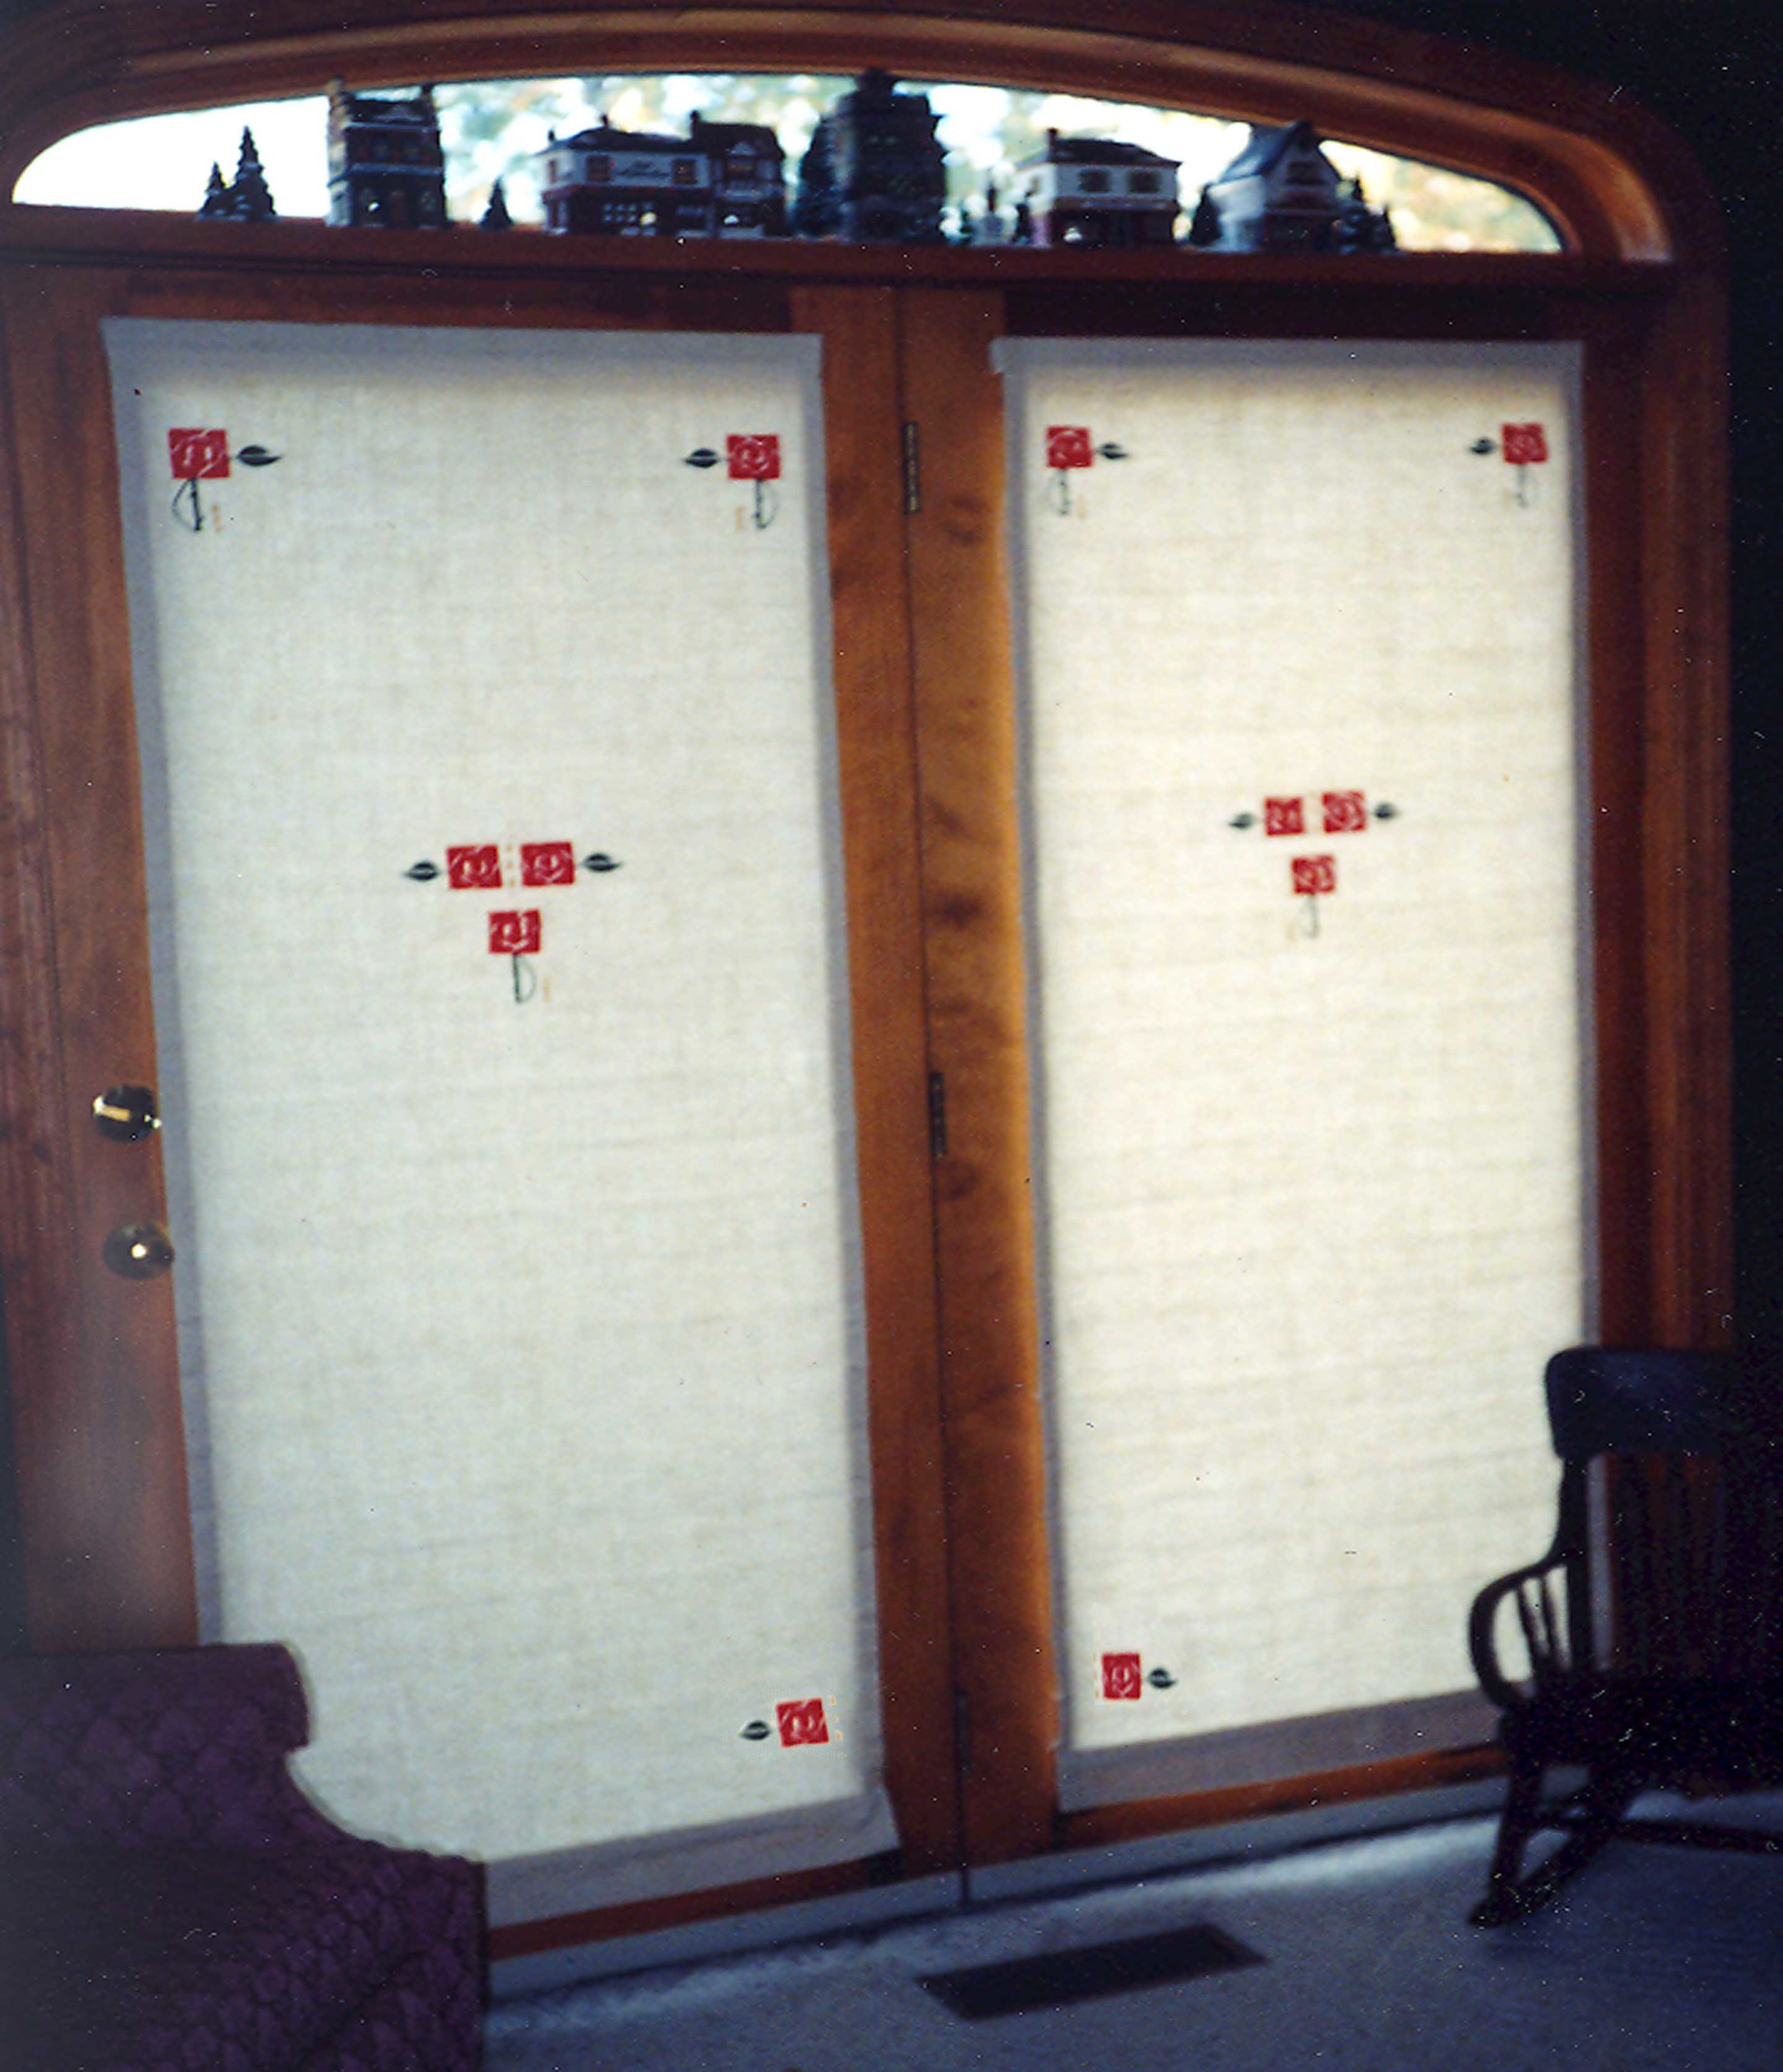 Shades pulled on a pair of doors. Only the top two Macintosh Rose appliques would show when the shade is raised.